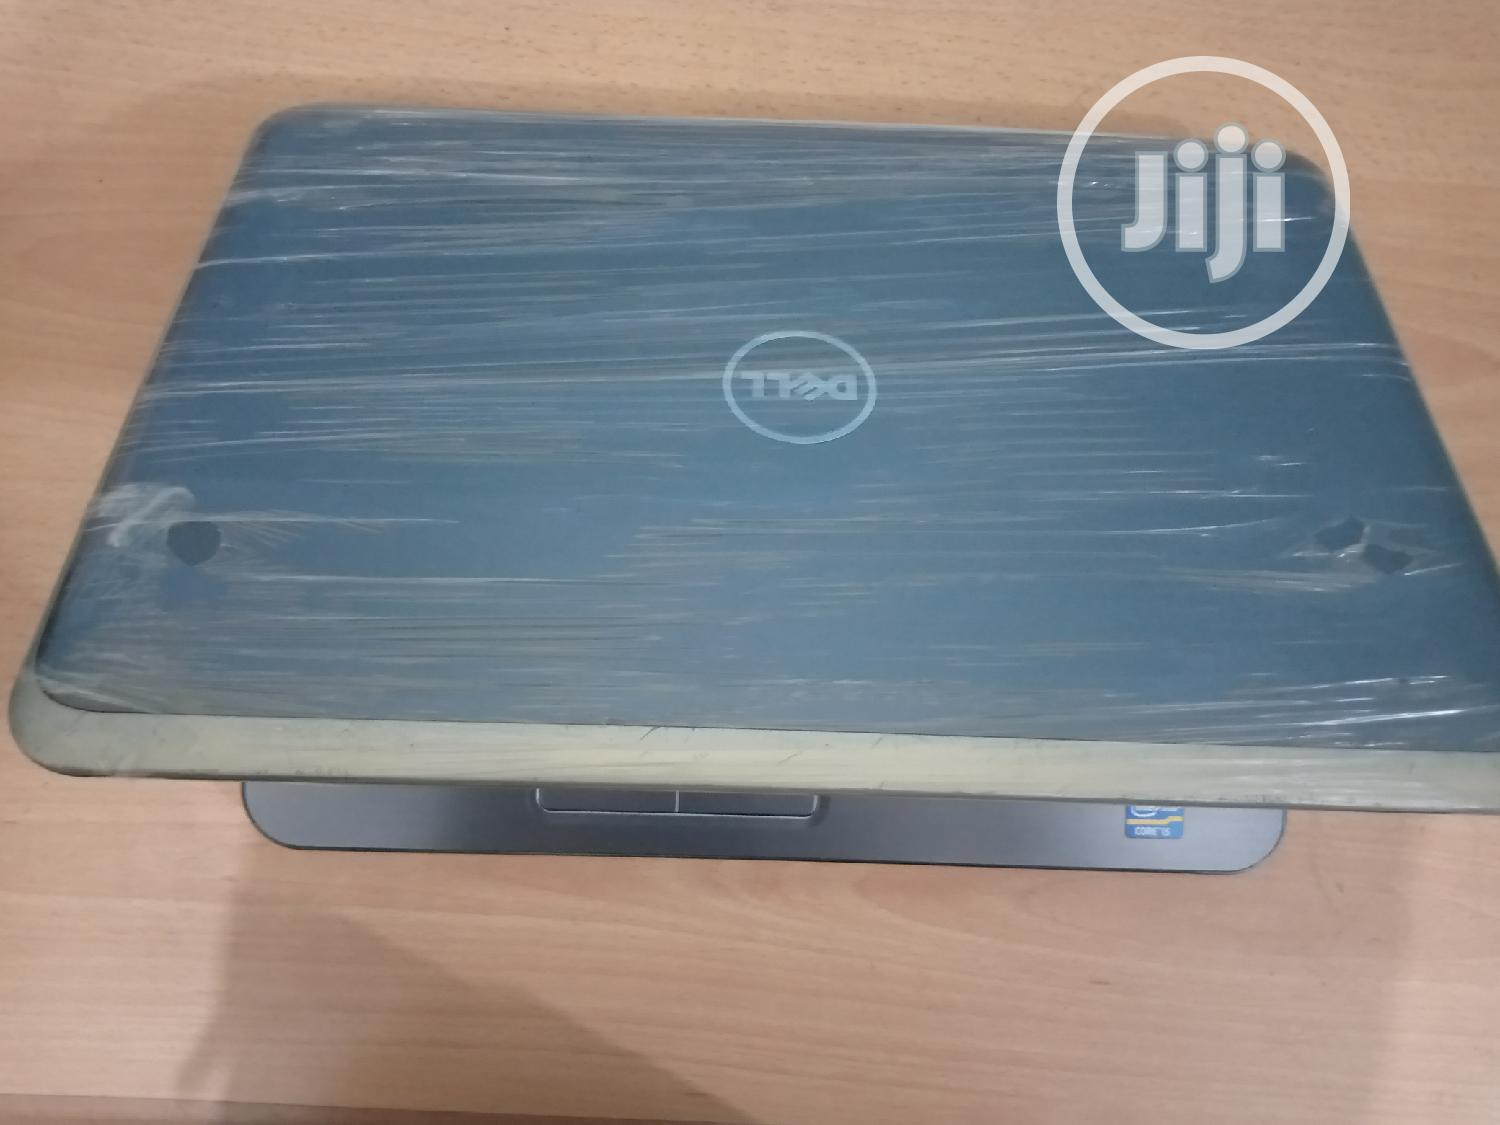 Archive: Laptop Dell Inspiron 15R 5521 4GB Intel Core i5 HDD 500GB